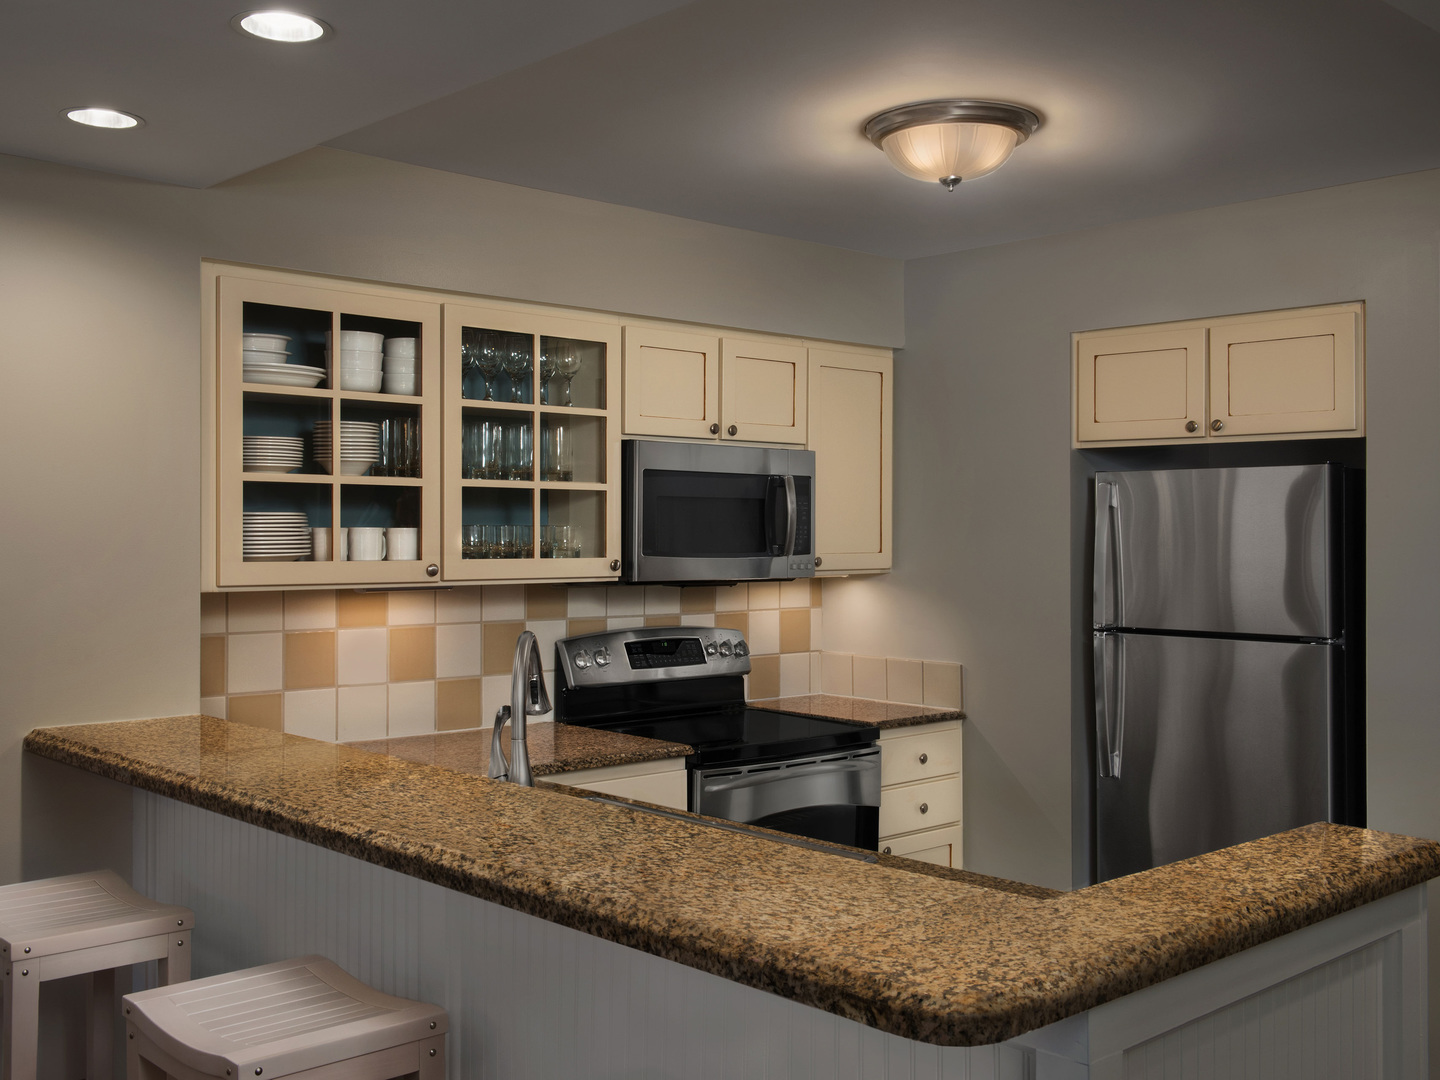 Marriott's SurfWatch<span class='trademark'>®</span> Villa Kitchen. Marriott's SurfWatch<span class='trademark'>®</span> is located in Hilton Head Island, South Carolina United States.